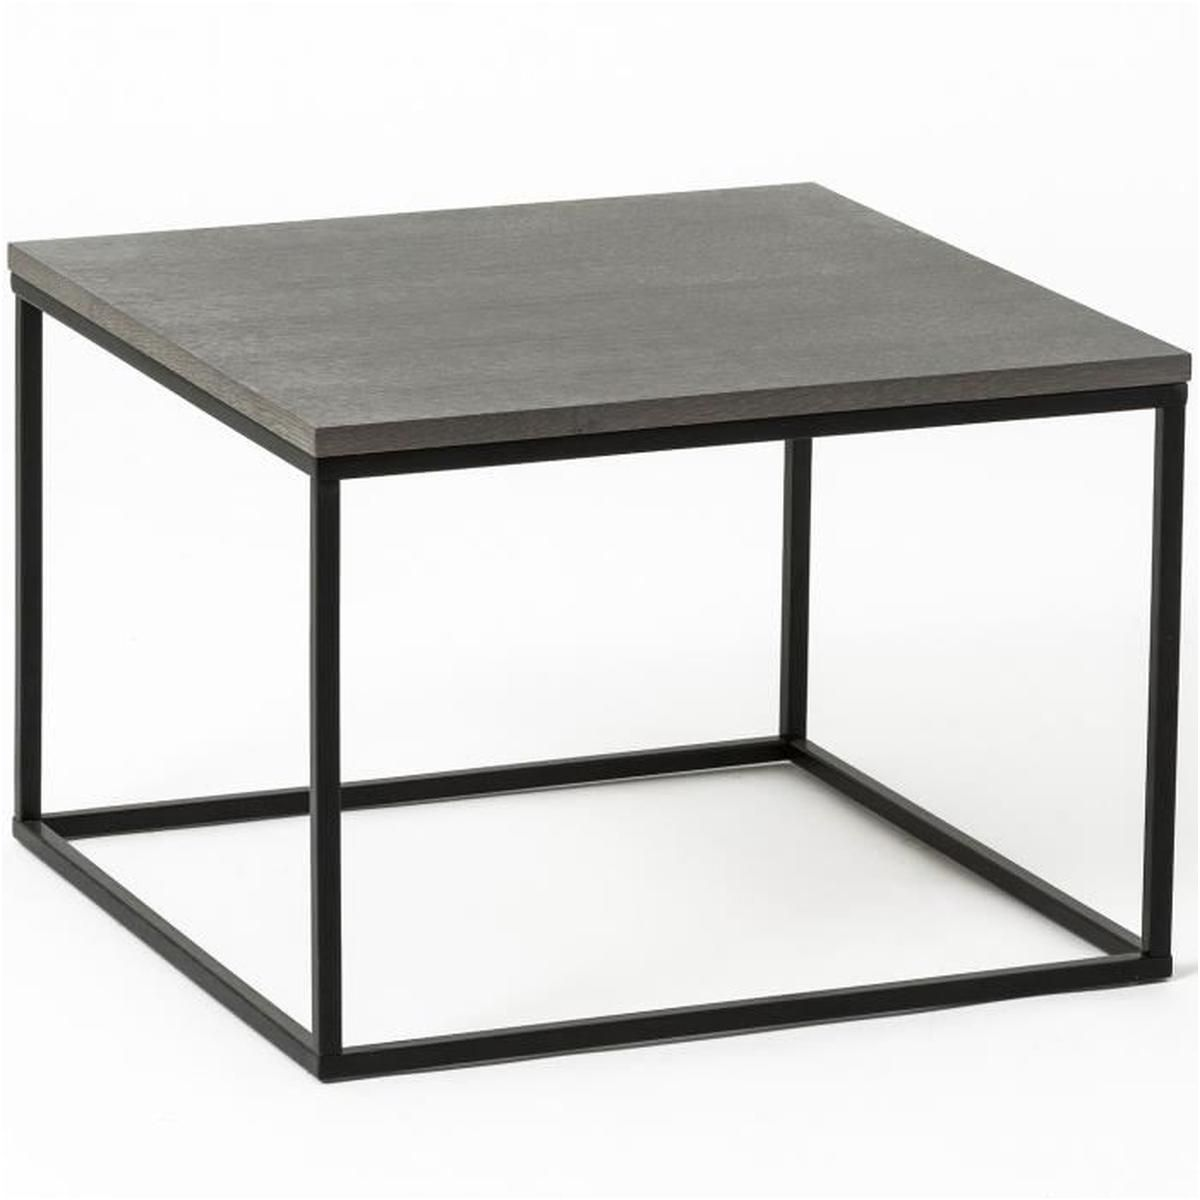 15 Genial Achat Table Basse Photos